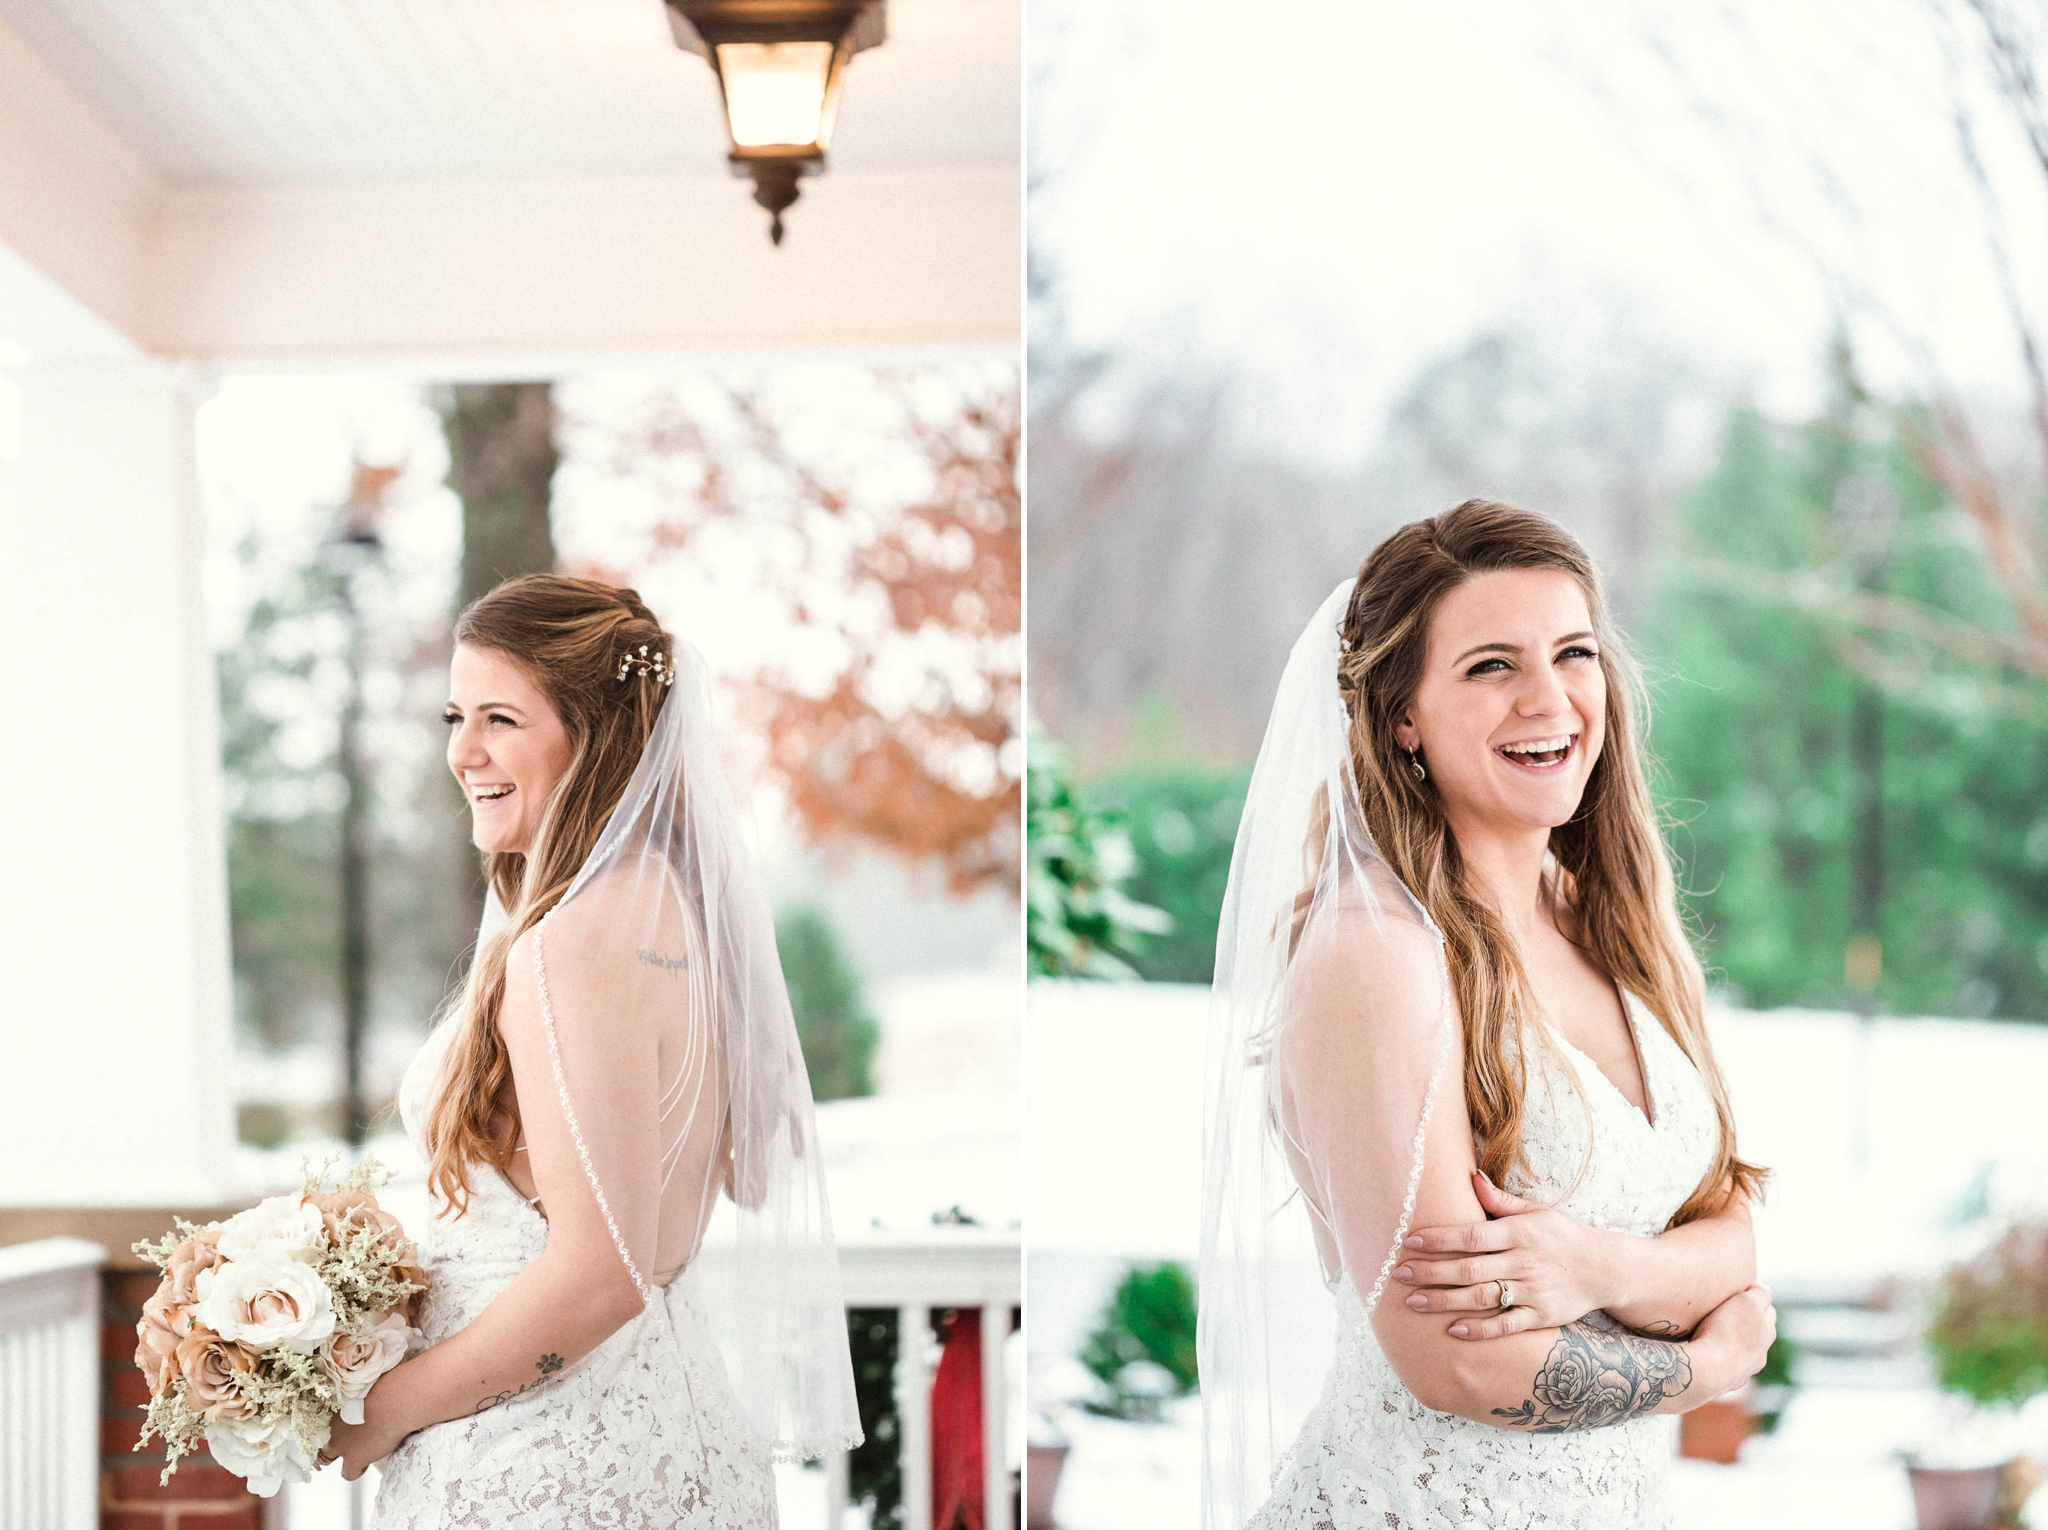 Bridal Portraits in the snow - Jessica + Brandon - Snowy Winter Wedding at the Rand Bryan House in Garner, NC - Raleigh North Carolina Wedding Photographer